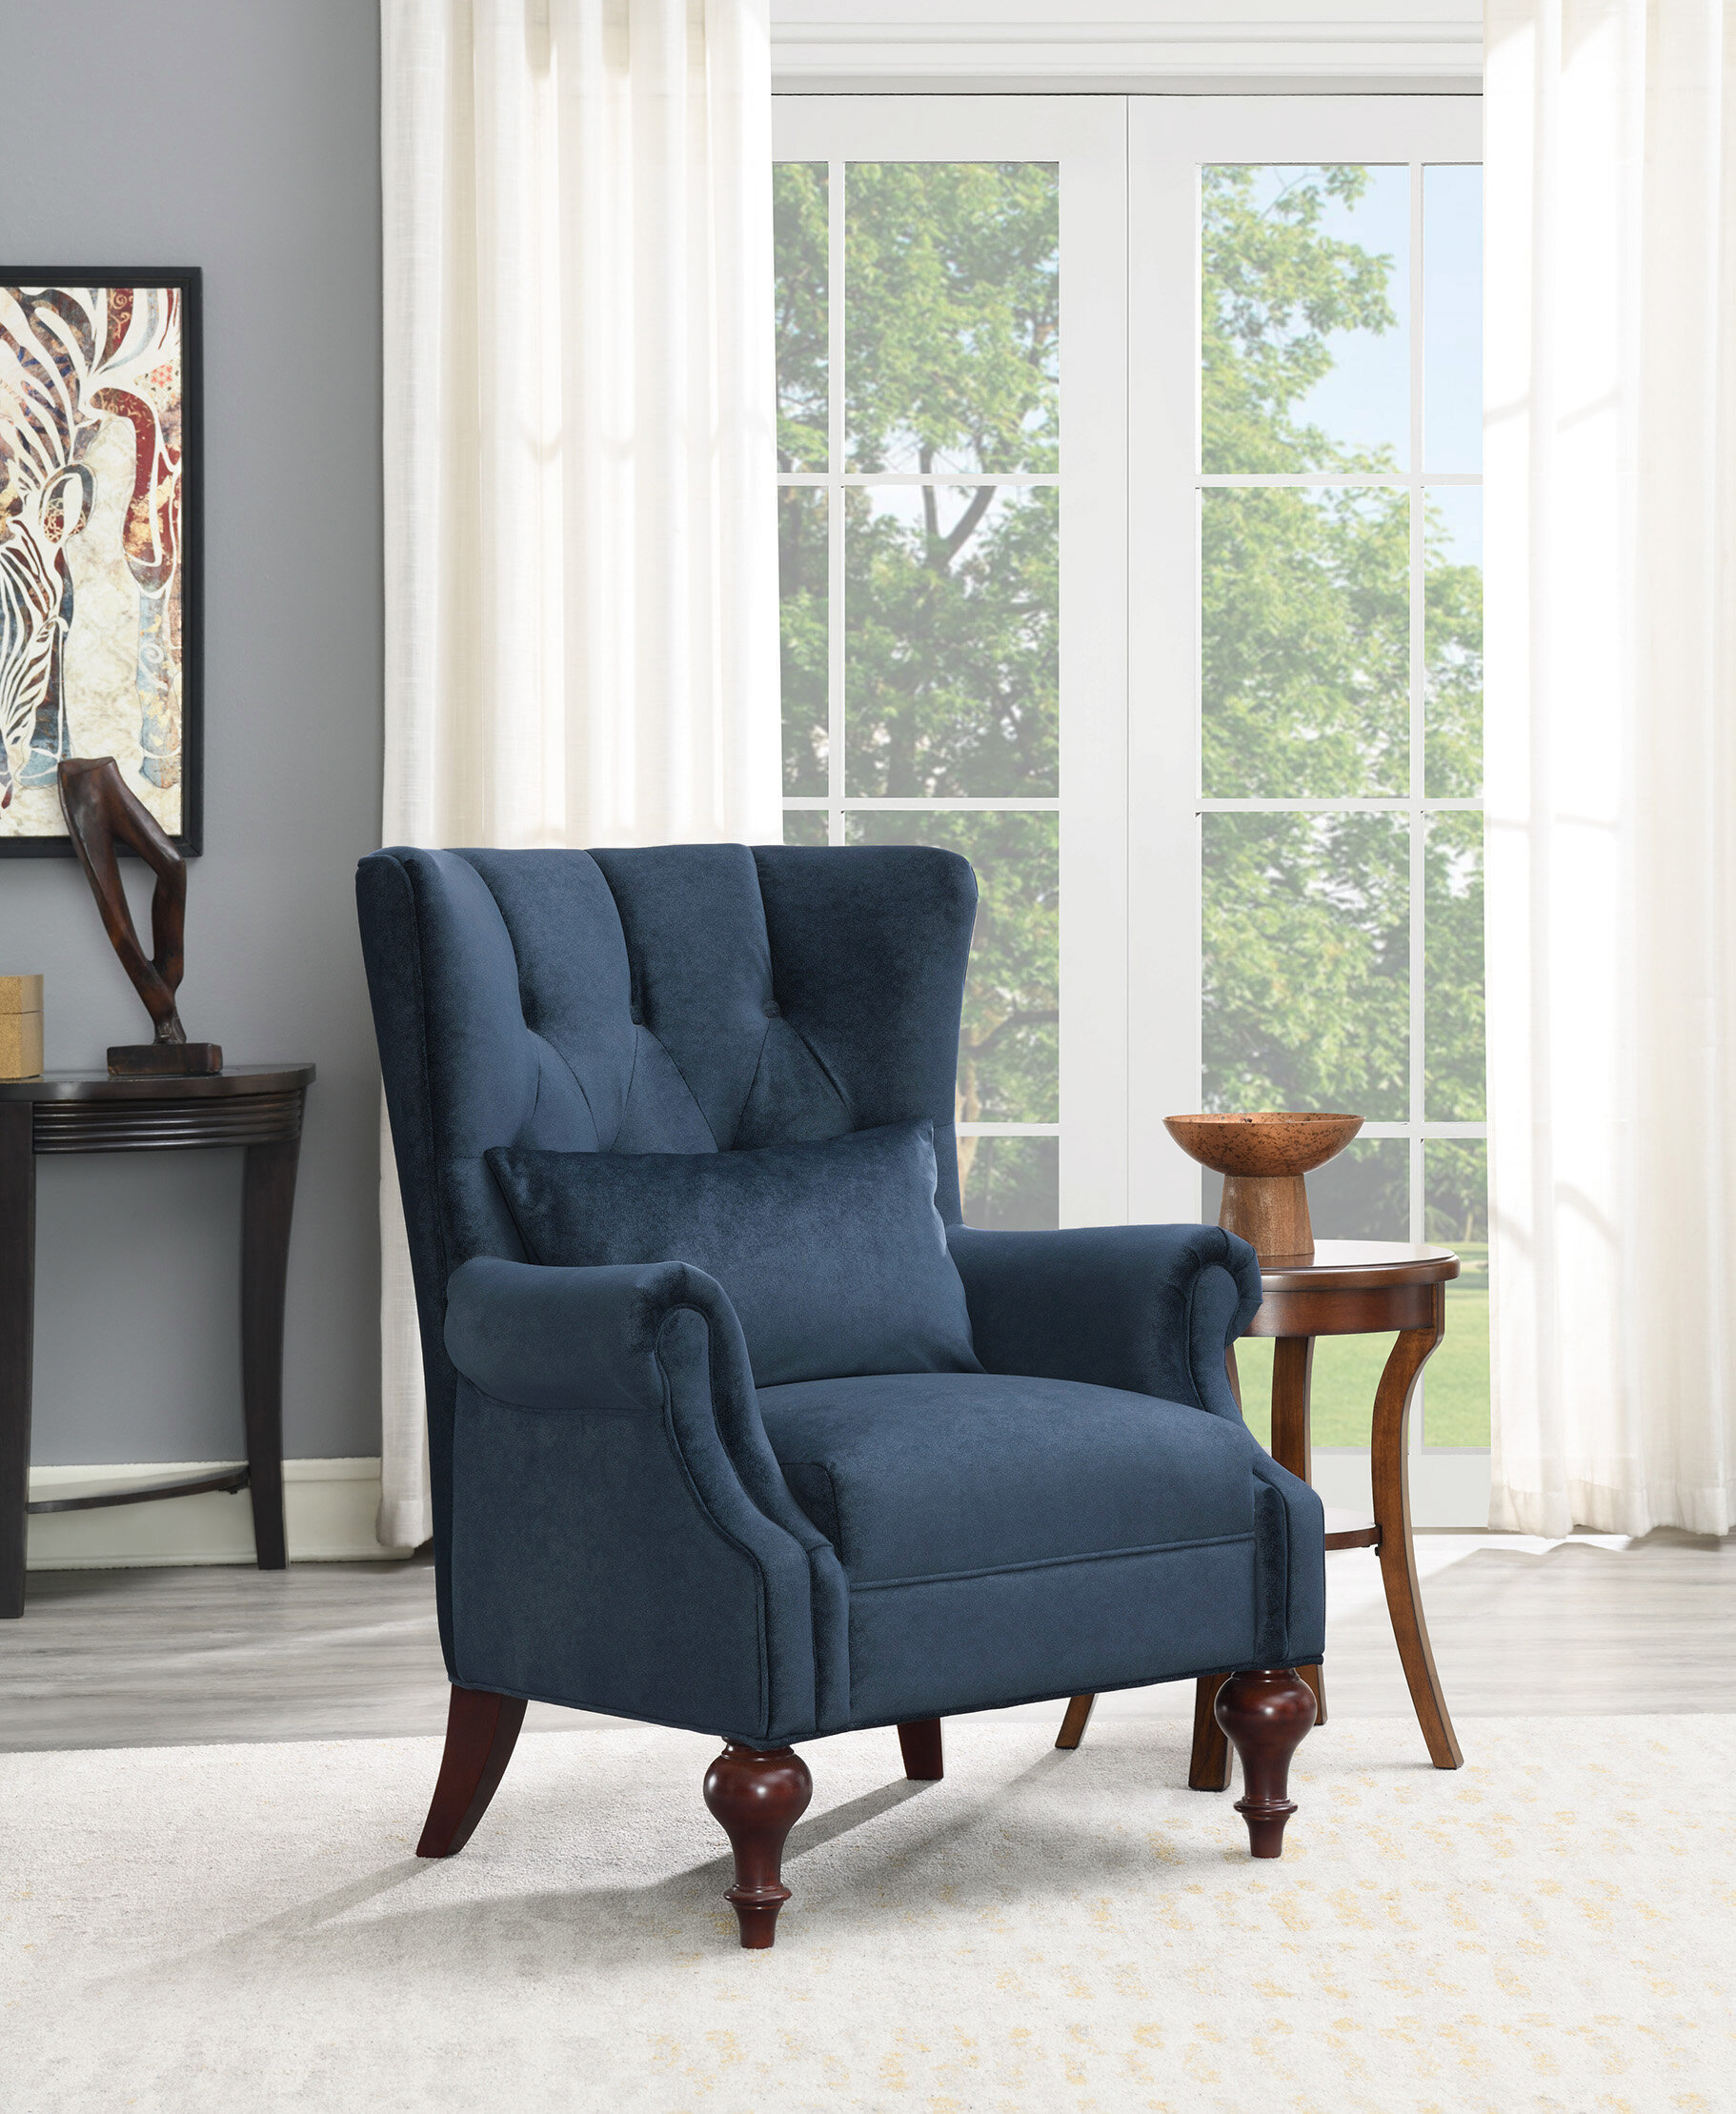 Escoto Wingback Chair In Andover Wingback Chairs (View 14 of 15)